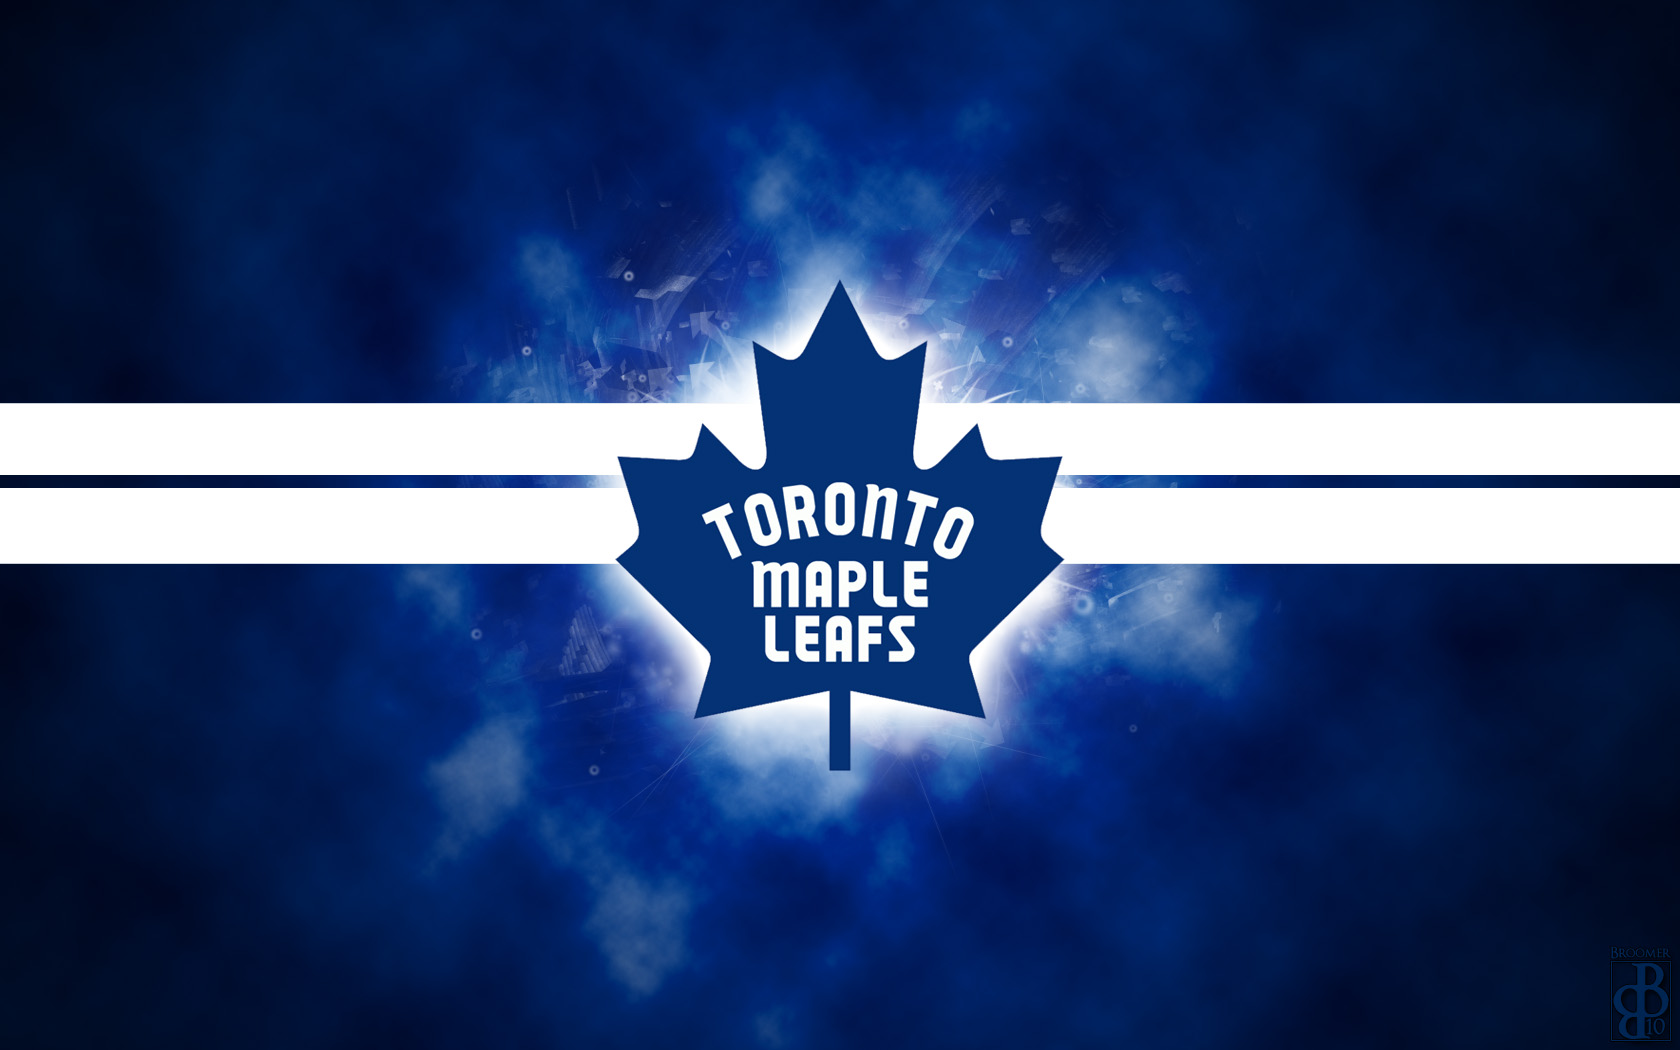 Toronto Maple Leafs Schedule Wallpaper Tattoo Pictures